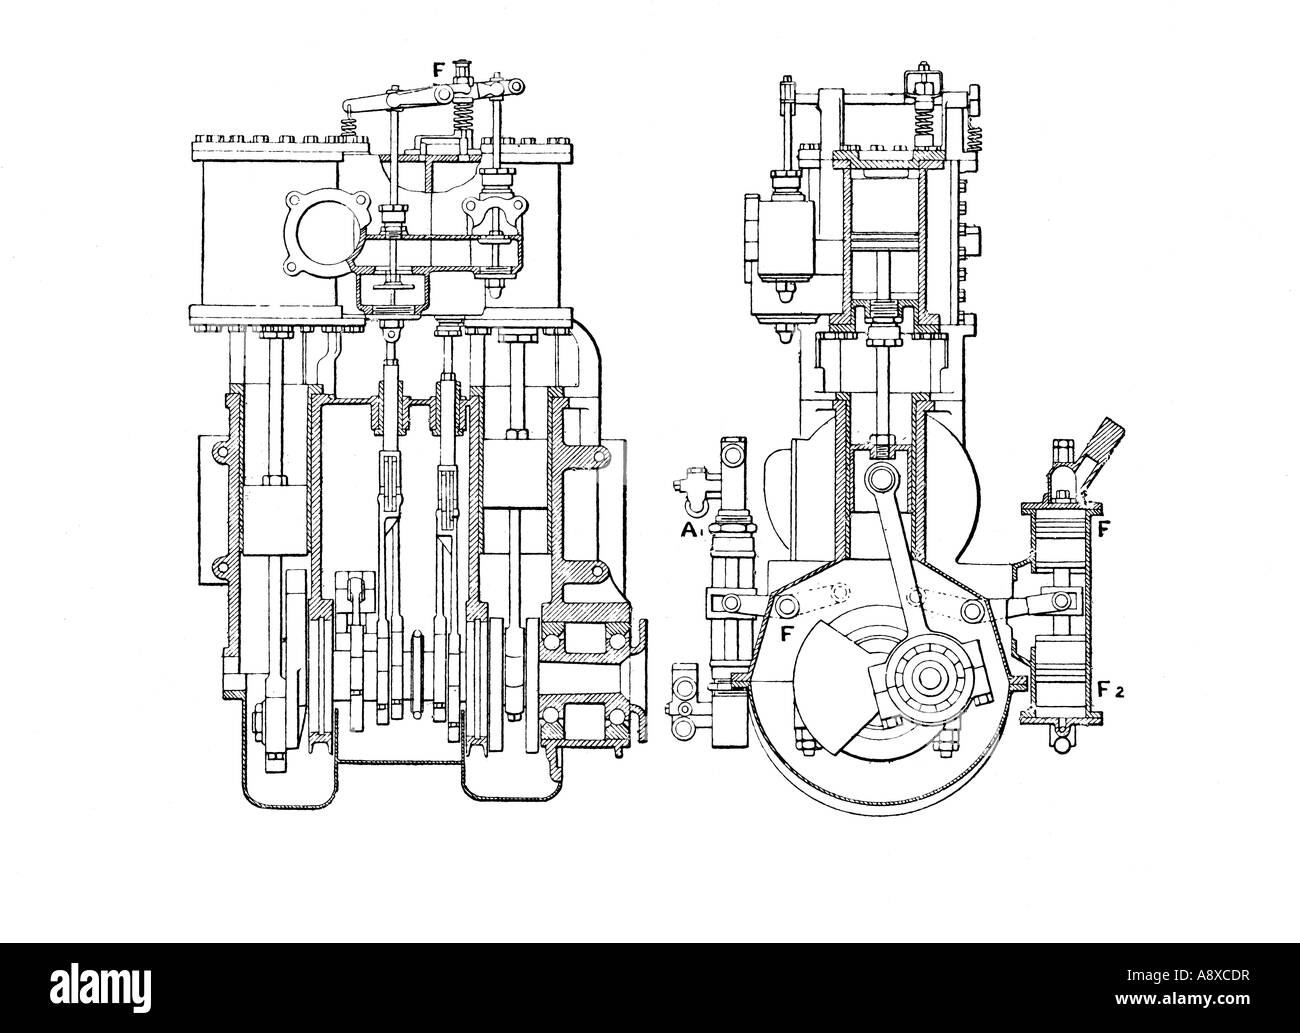 hight resolution of side and end sectional elevation diagrams of white 30 horse power steam car engine stock